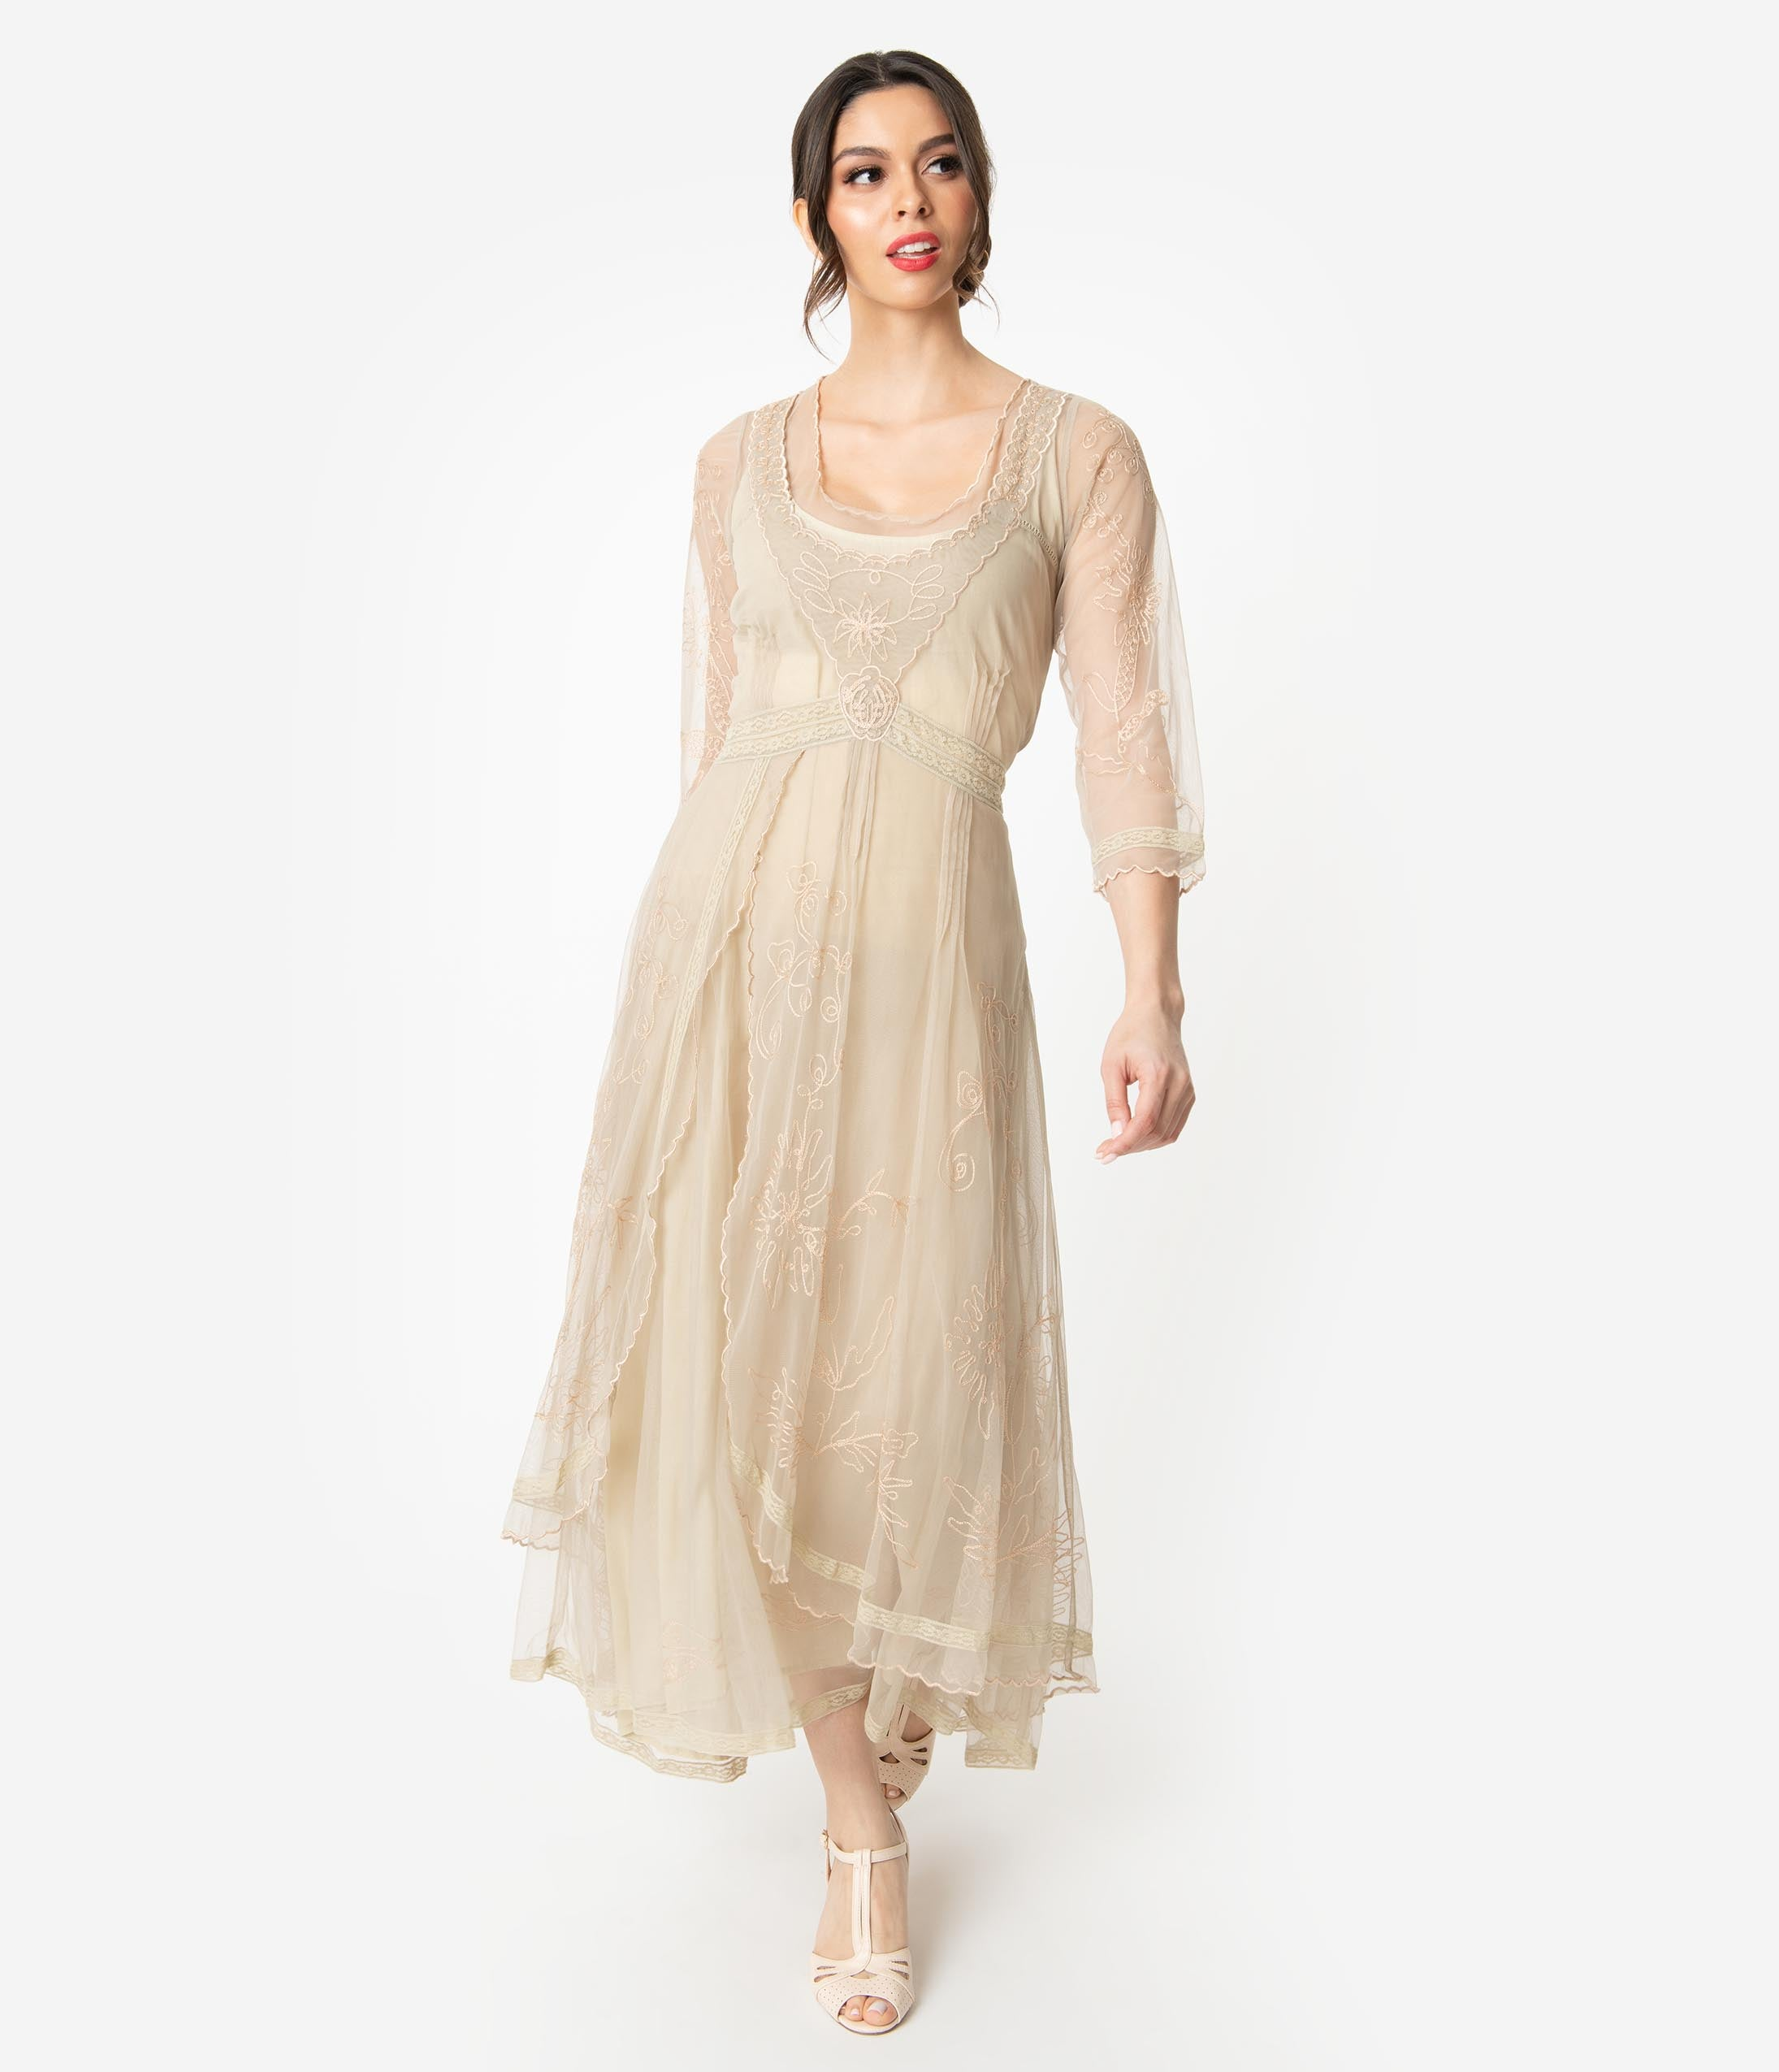 d2288102b Vintage Cream Embroidered Tulle Downton Abbey Edwardian Tea Party Dress